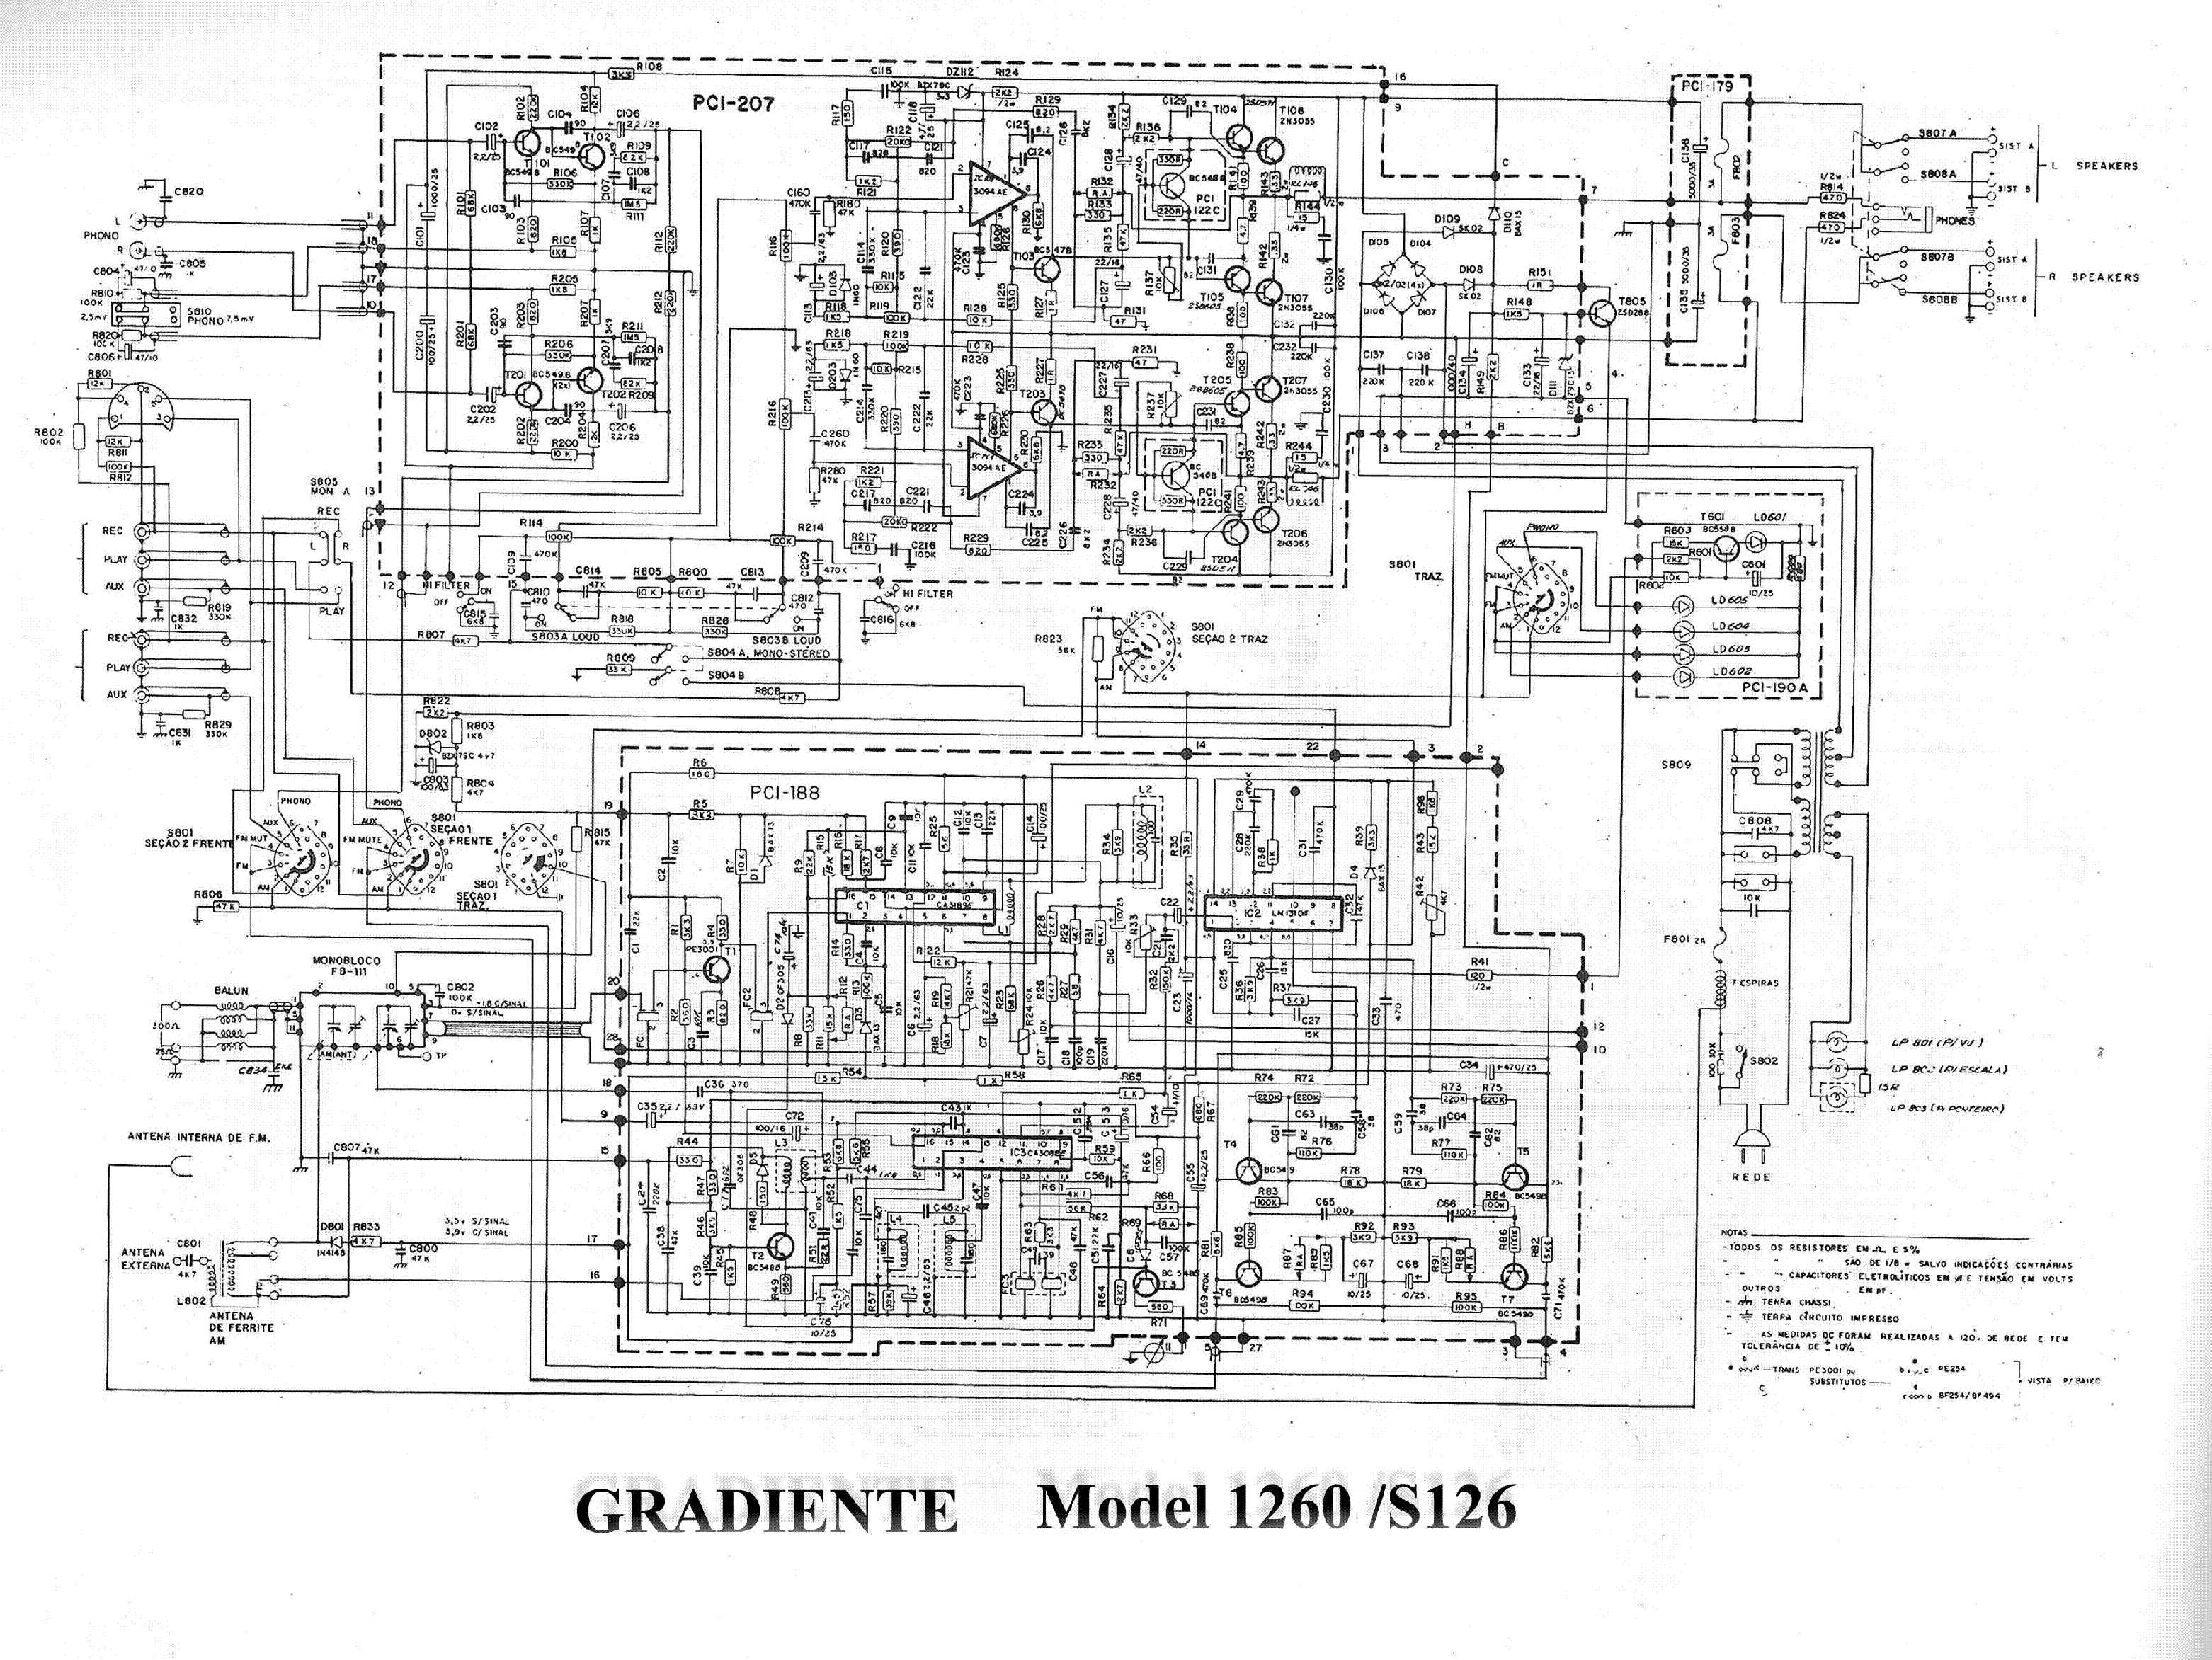 GRADIENTE MODEL 1260 S126 SCH service manual (1st page)